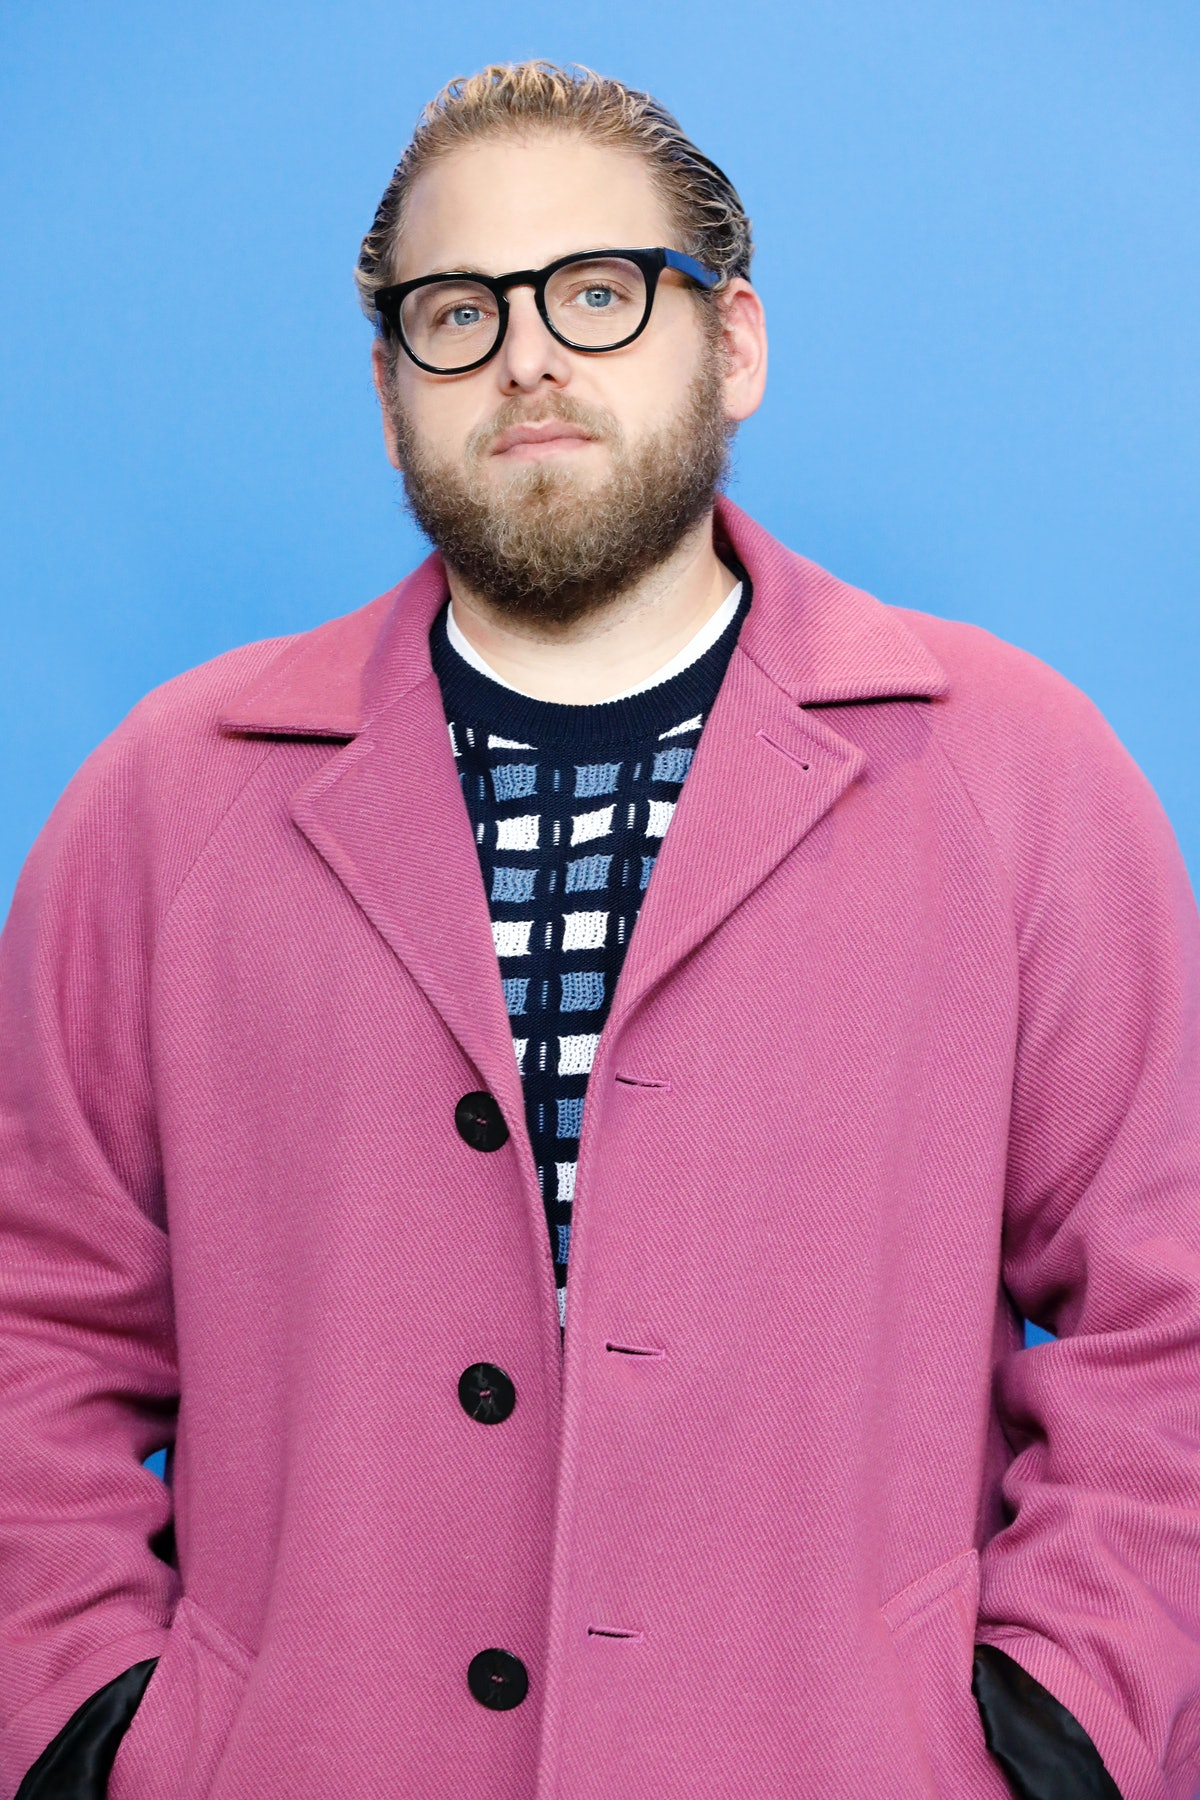 BERLIN, GERMANY - FEBRUARY 10: (EDITORS NOTE: Image has been digitally retouched) Jonah Hill attends...